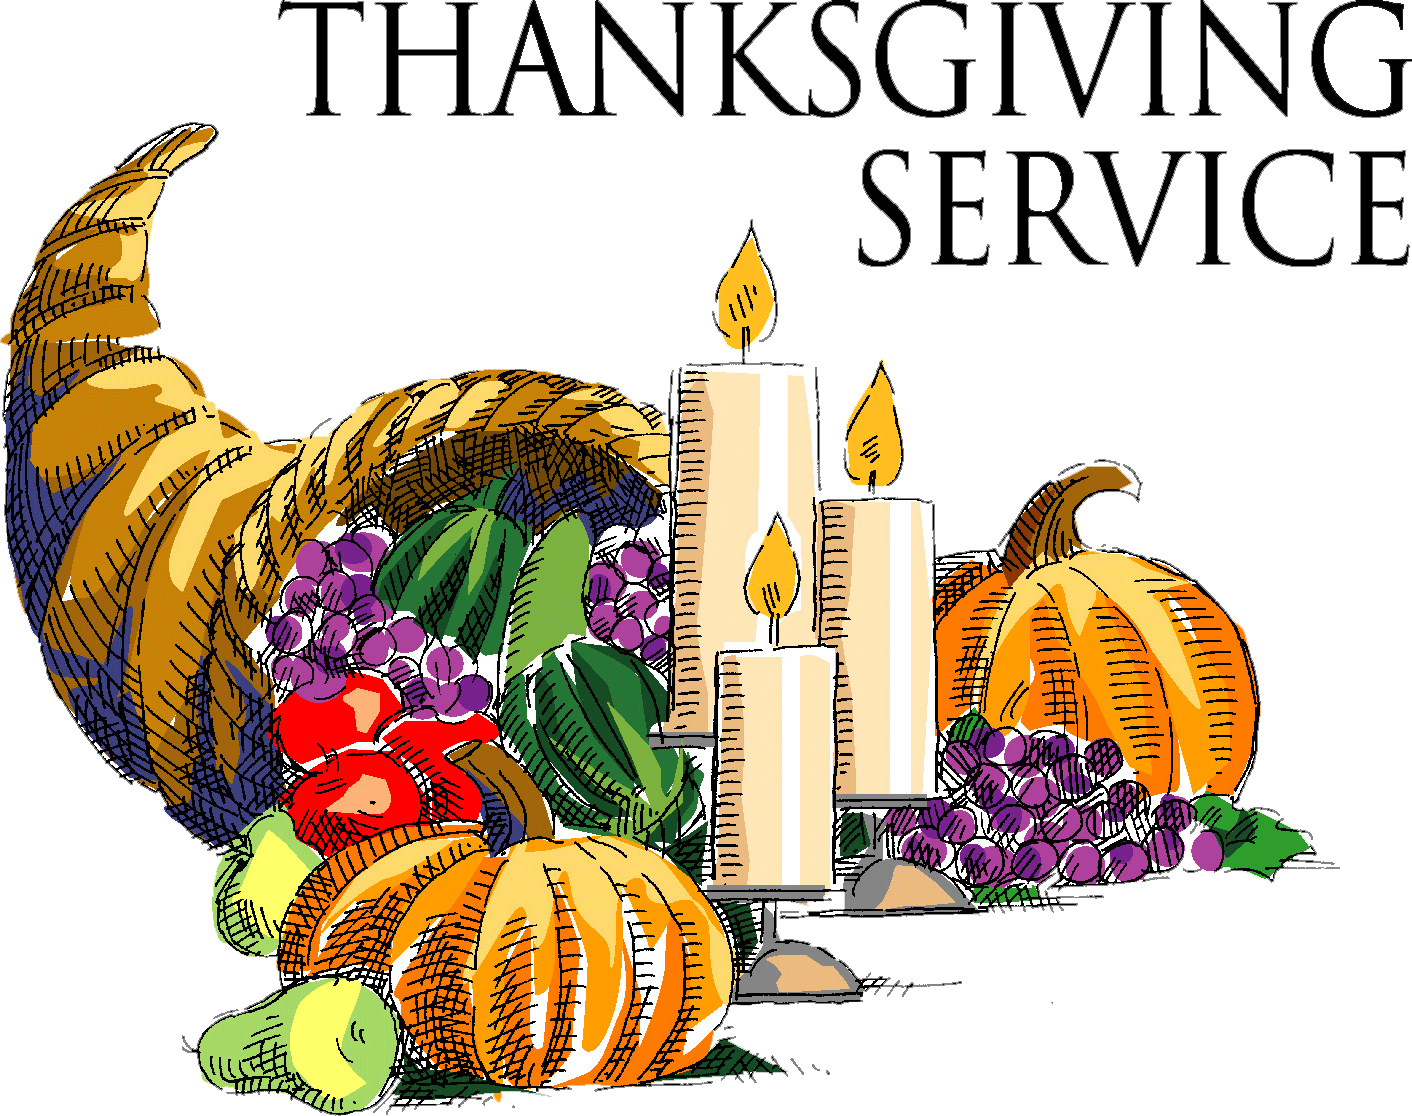 Free clipart welcome for thanksgiving clip art royalty free stock Thanksgiving day dinner community of service clipart clip art royalty free stock